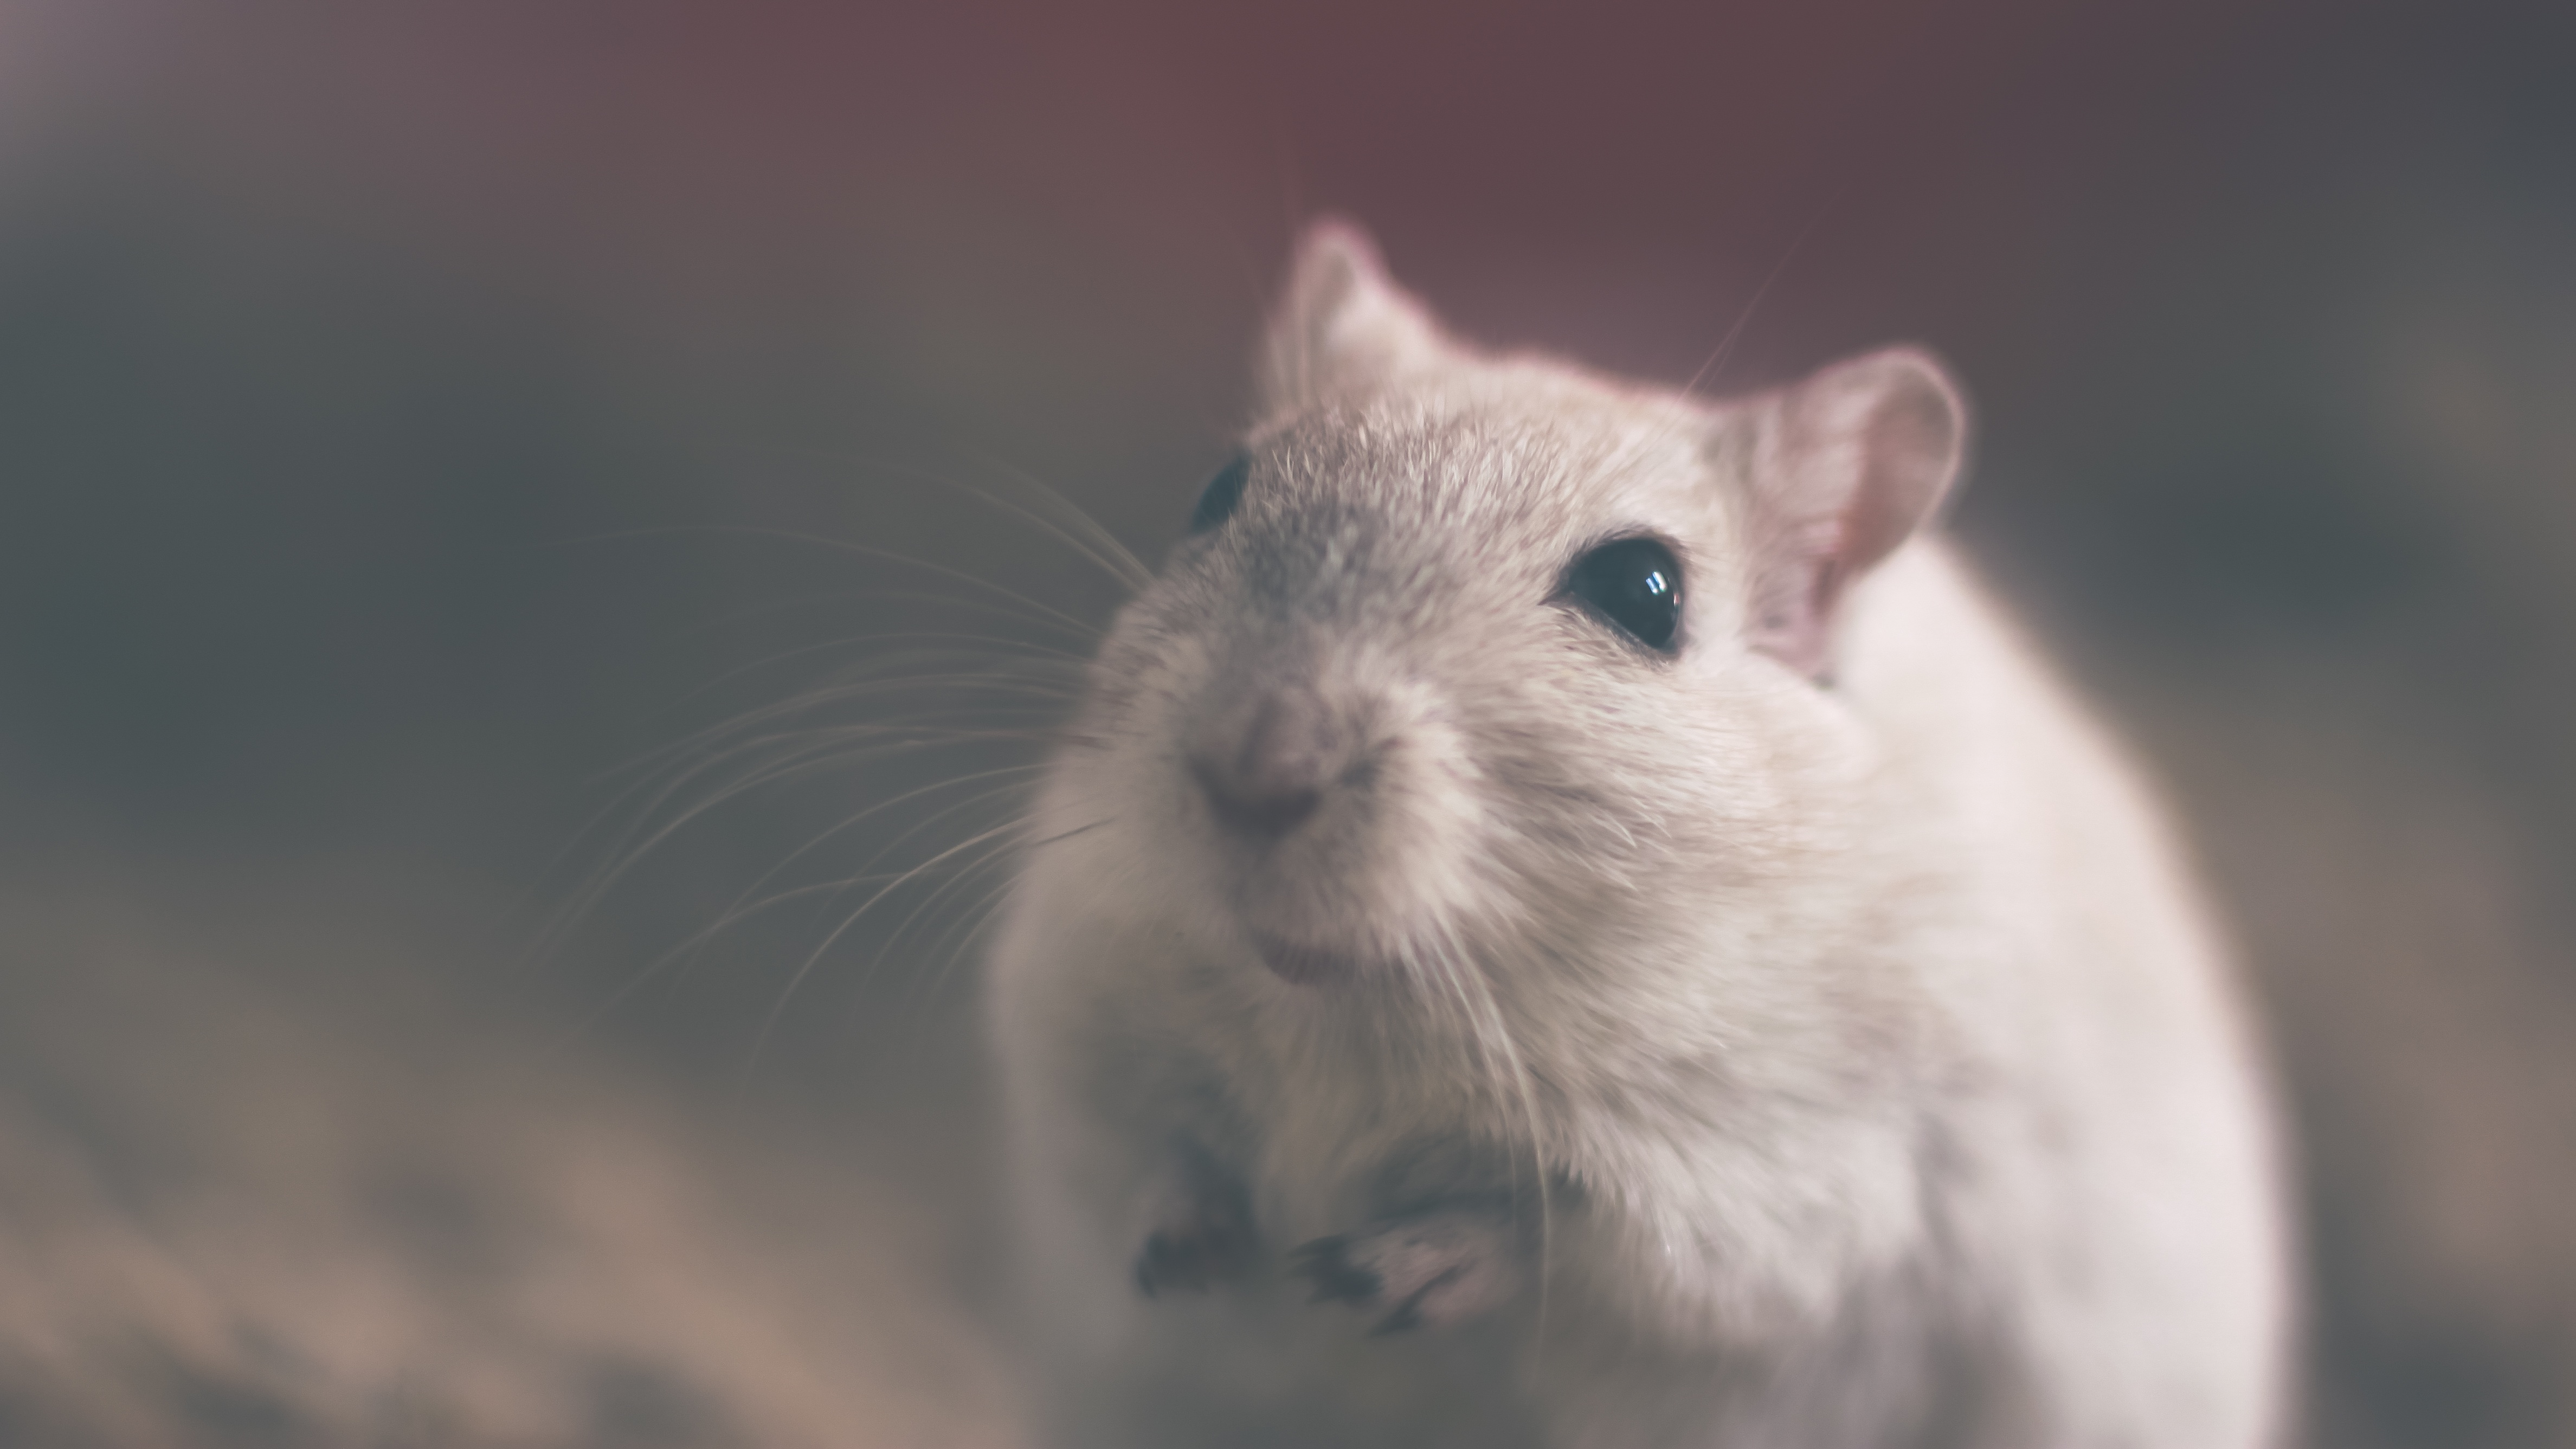 SUPER MICE THAT SNIFF OUT LANDMINES